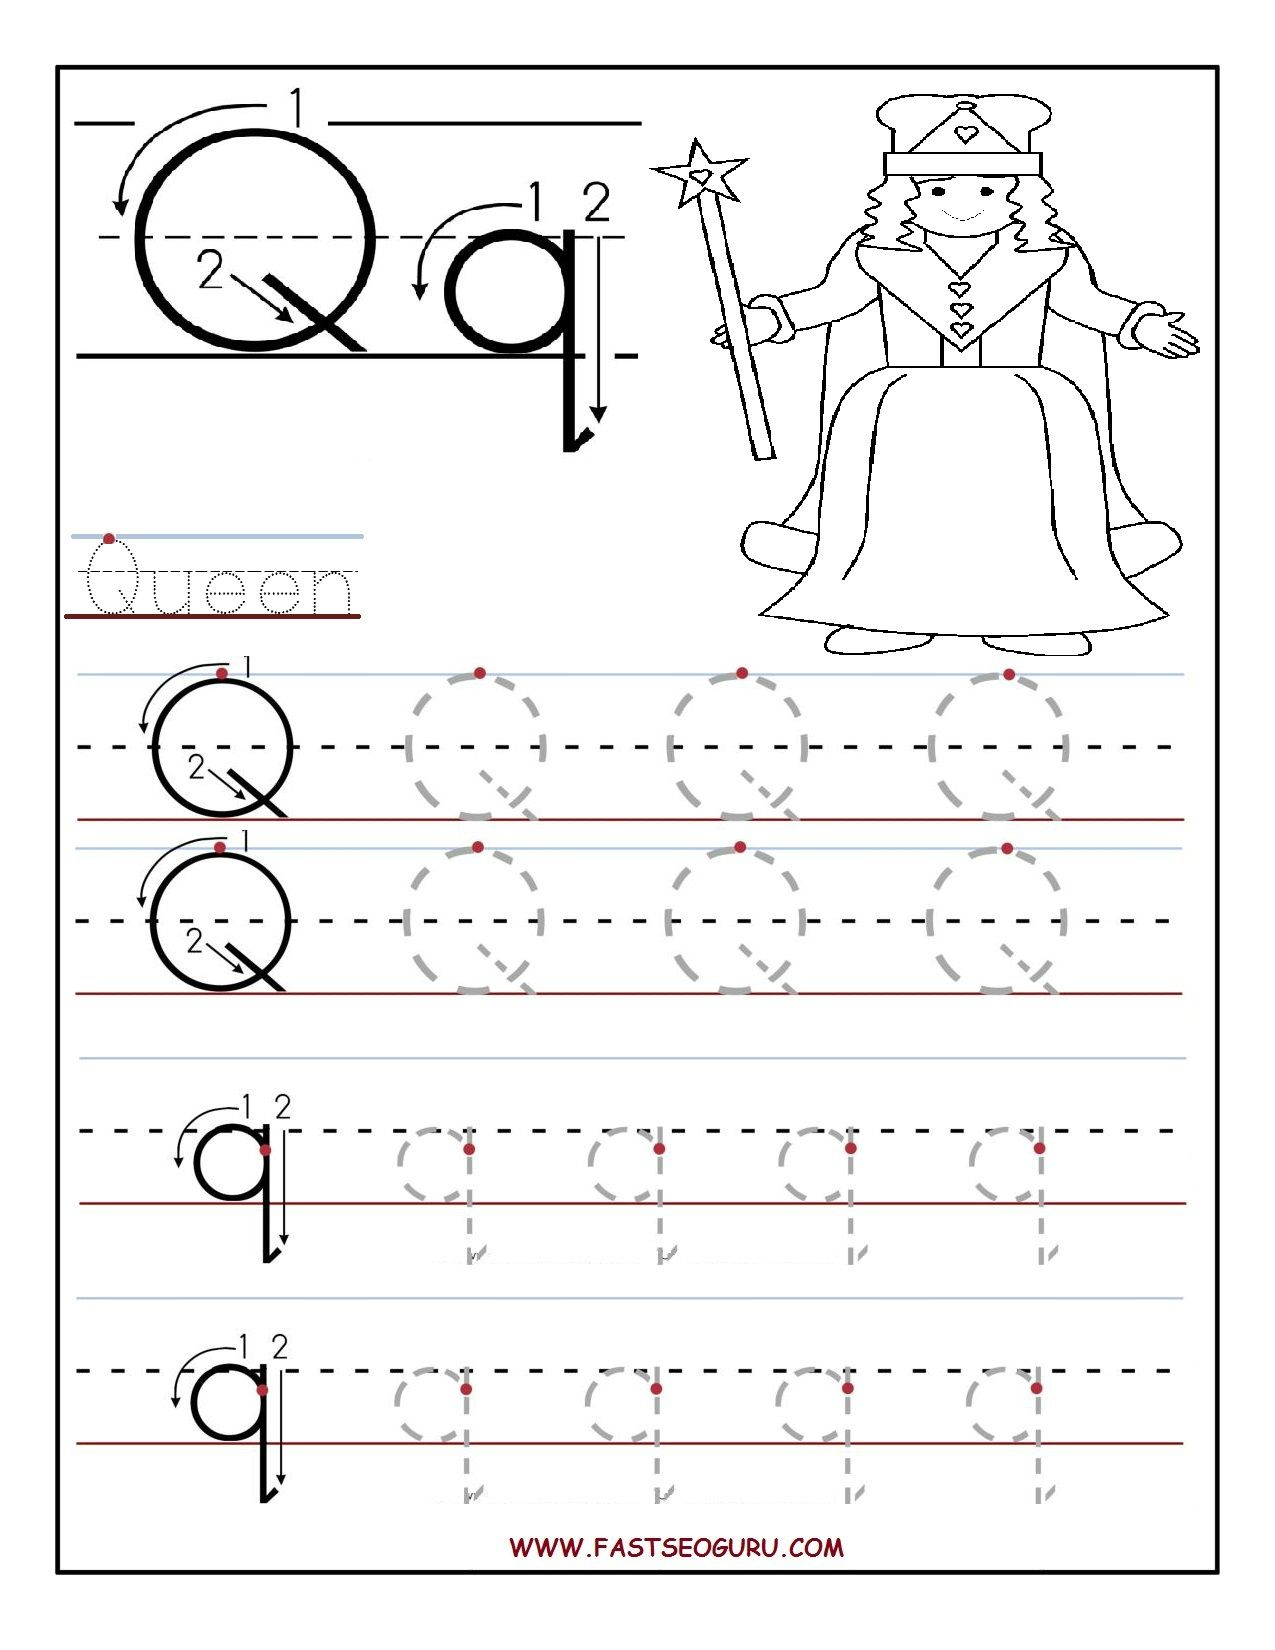 Pin by Vilfran Gason on Decor | Preschool worksheets ...